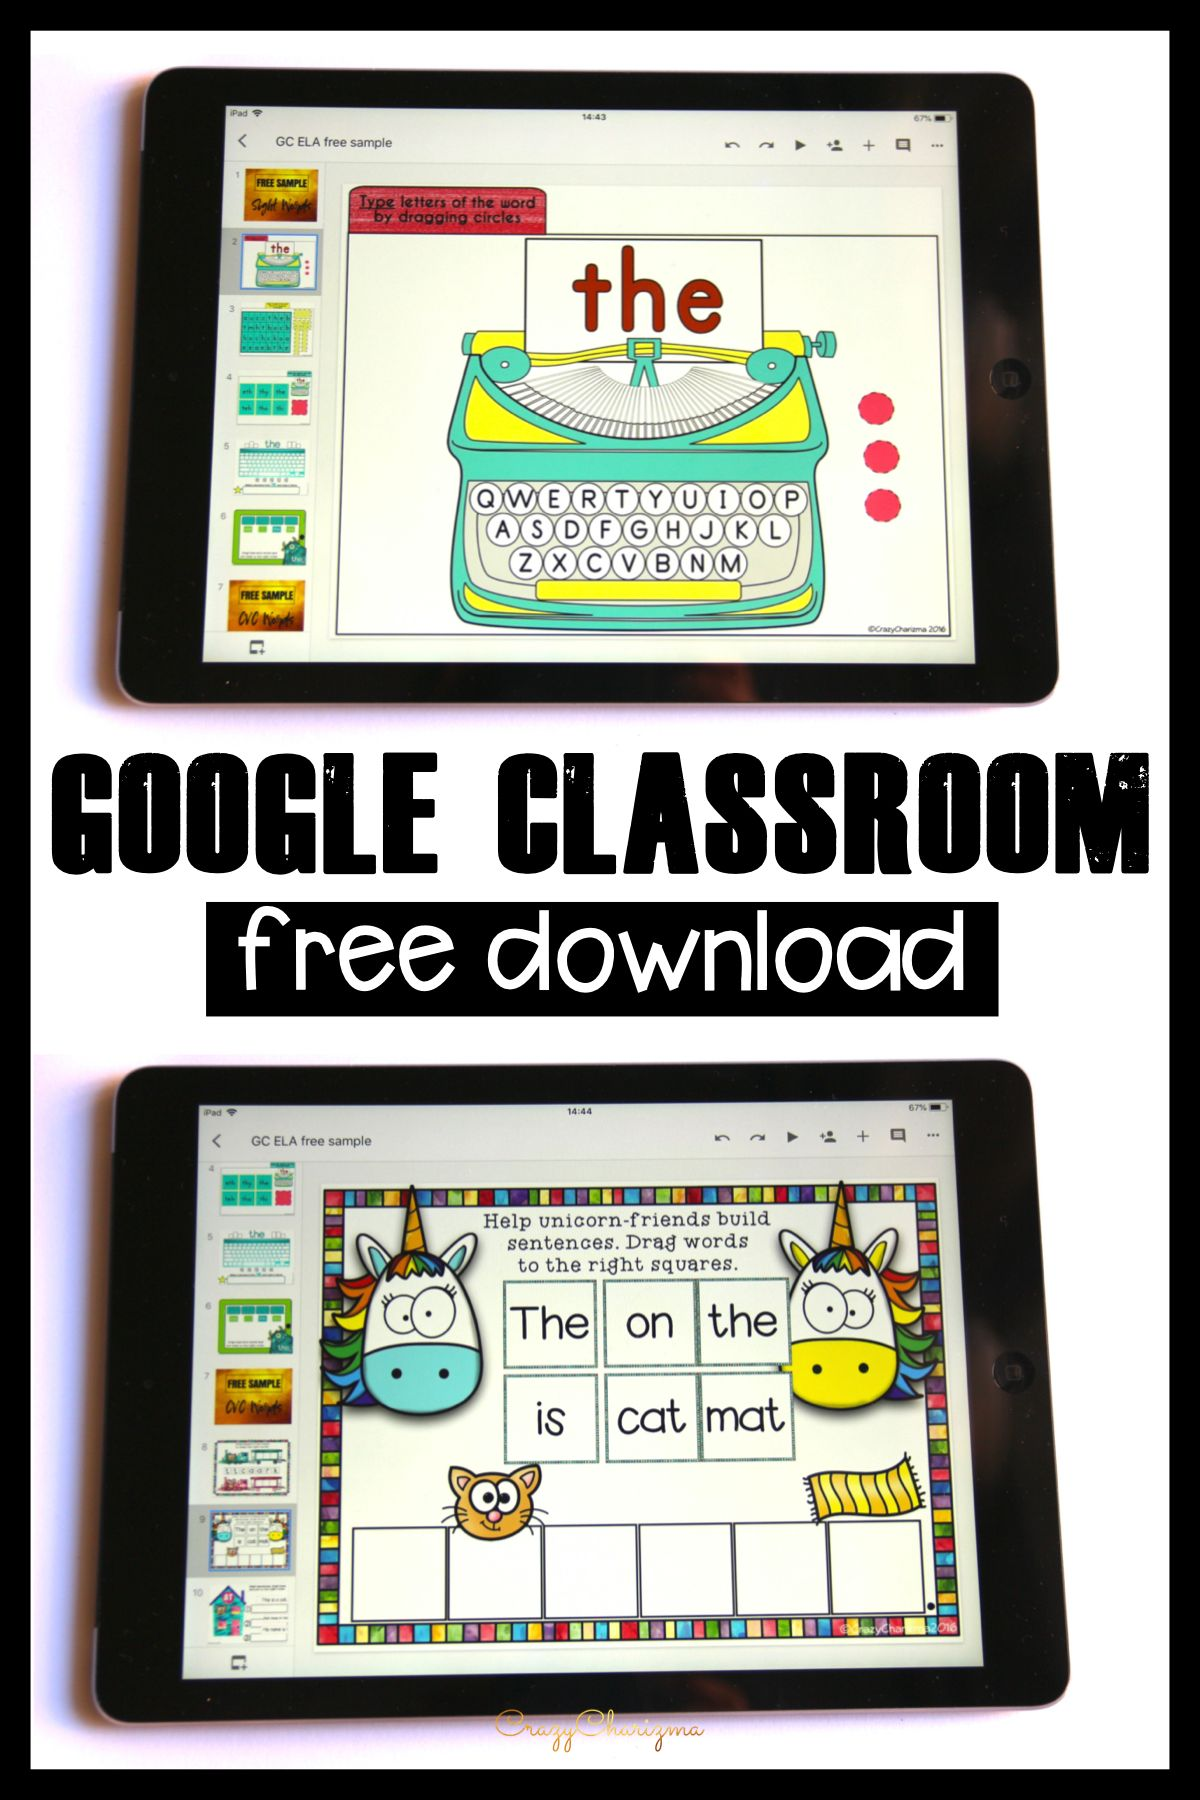 Free activities for Google Classroom.